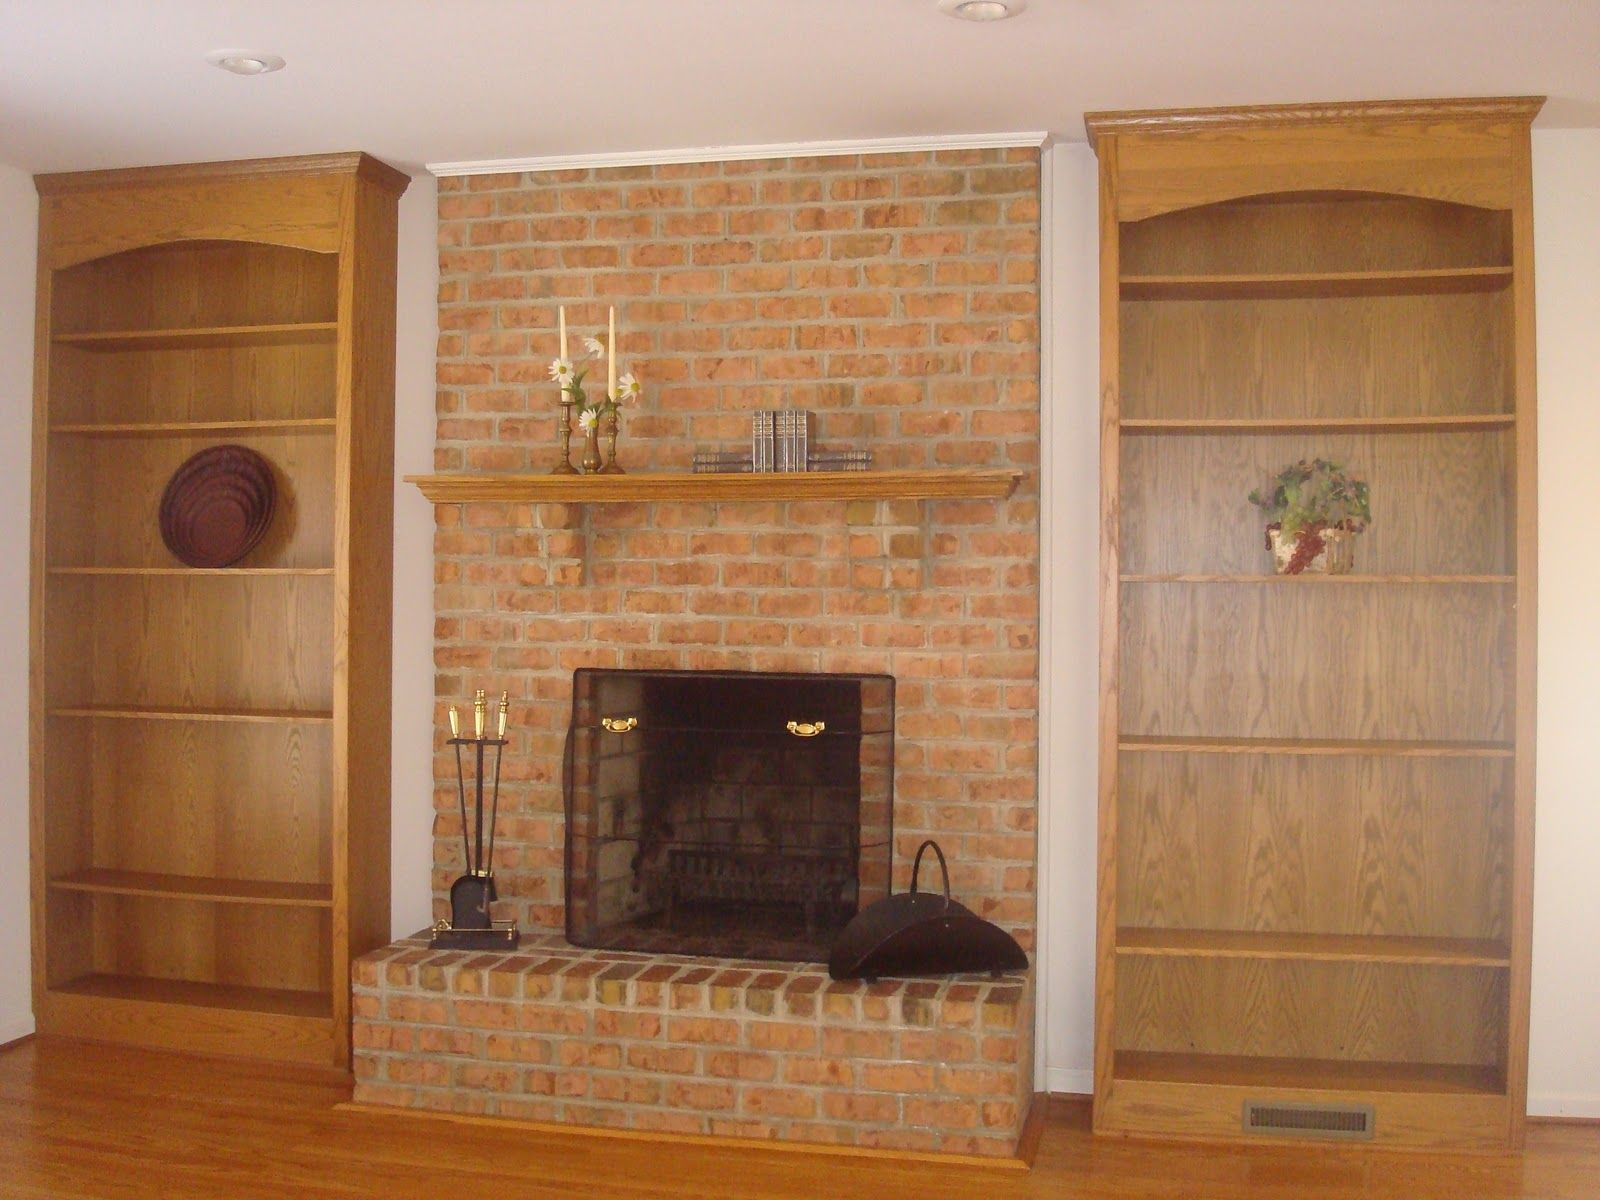 Brick fireplace makeover ideas Google Search Fireplace